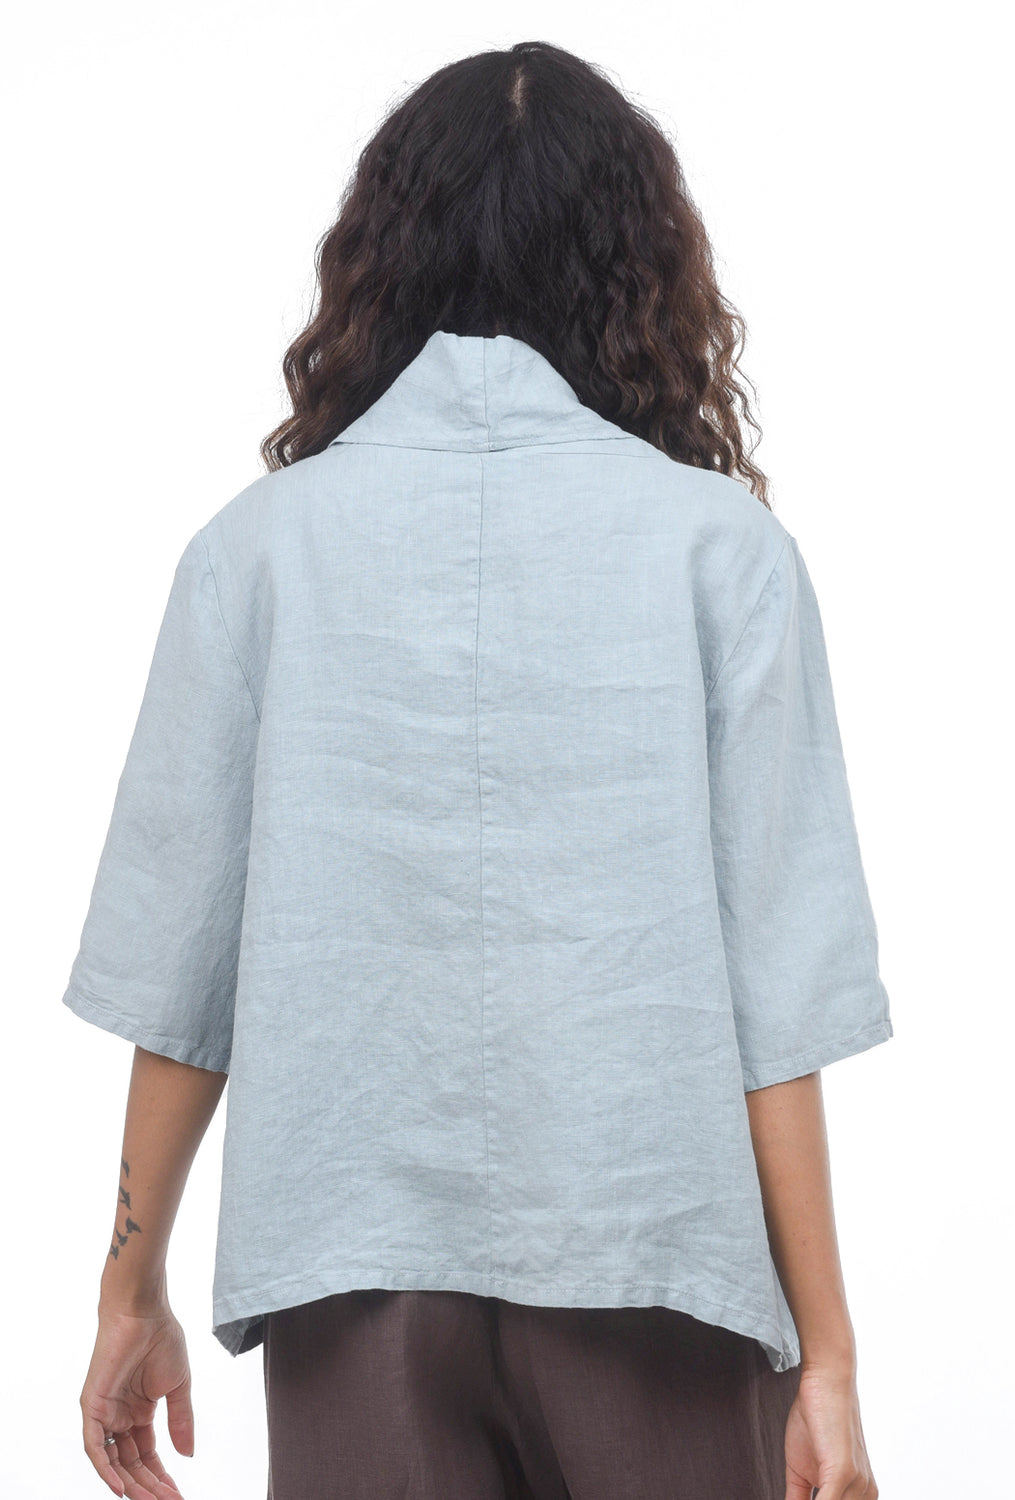 Bryn Walker Linen Nola Shirt, Seashore Blue